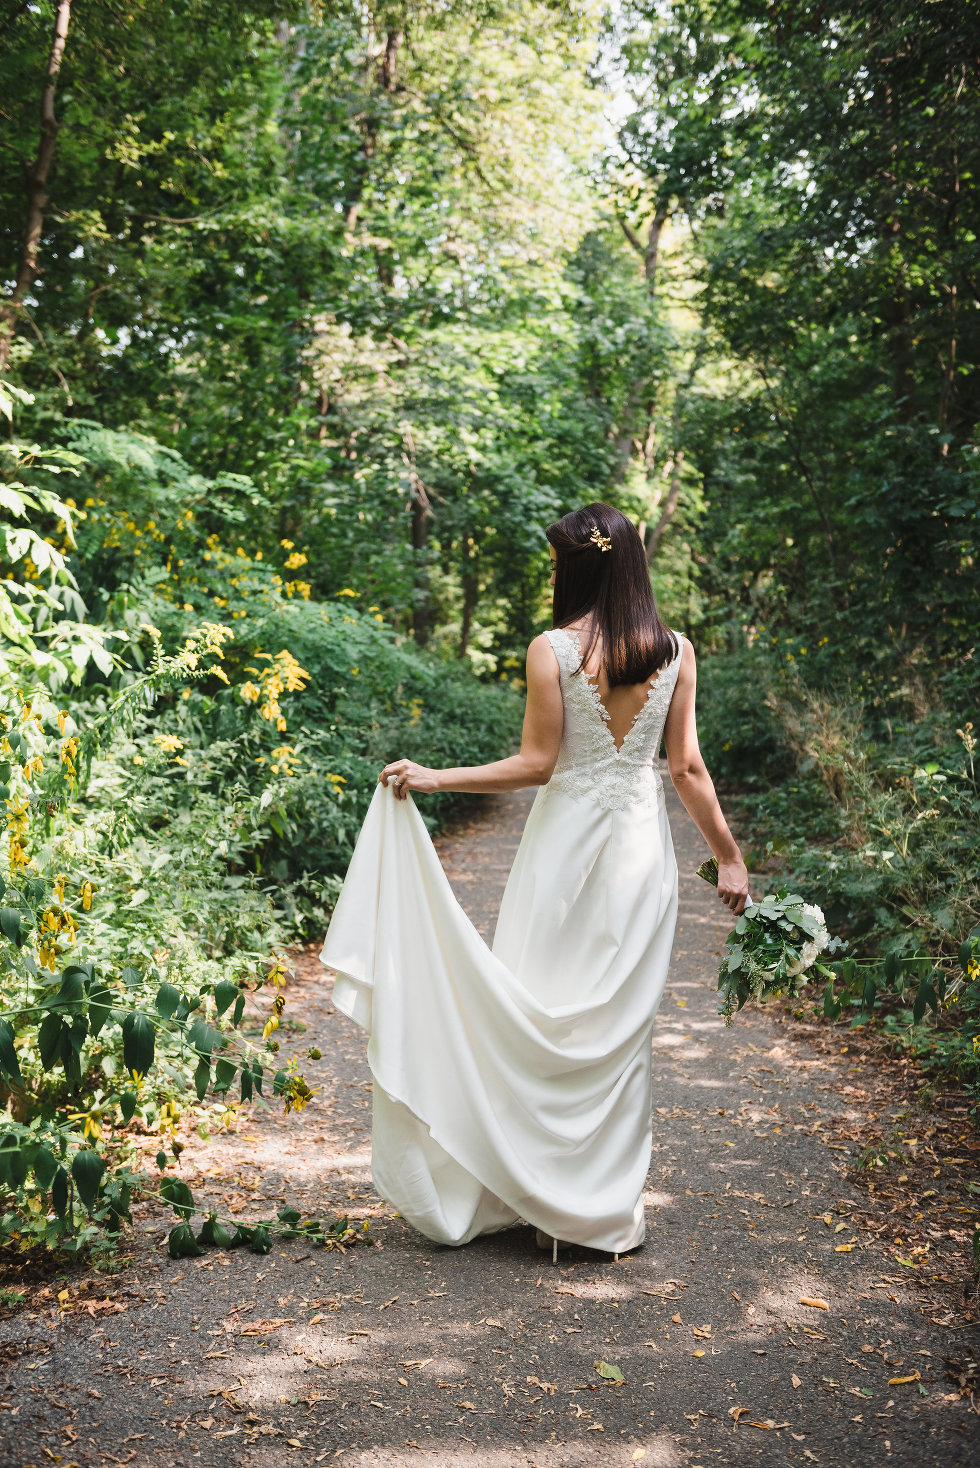 bride holding up bottom of wedding dress in one hand, bouquet in the other, as she walks through forest Toronto wedding photography